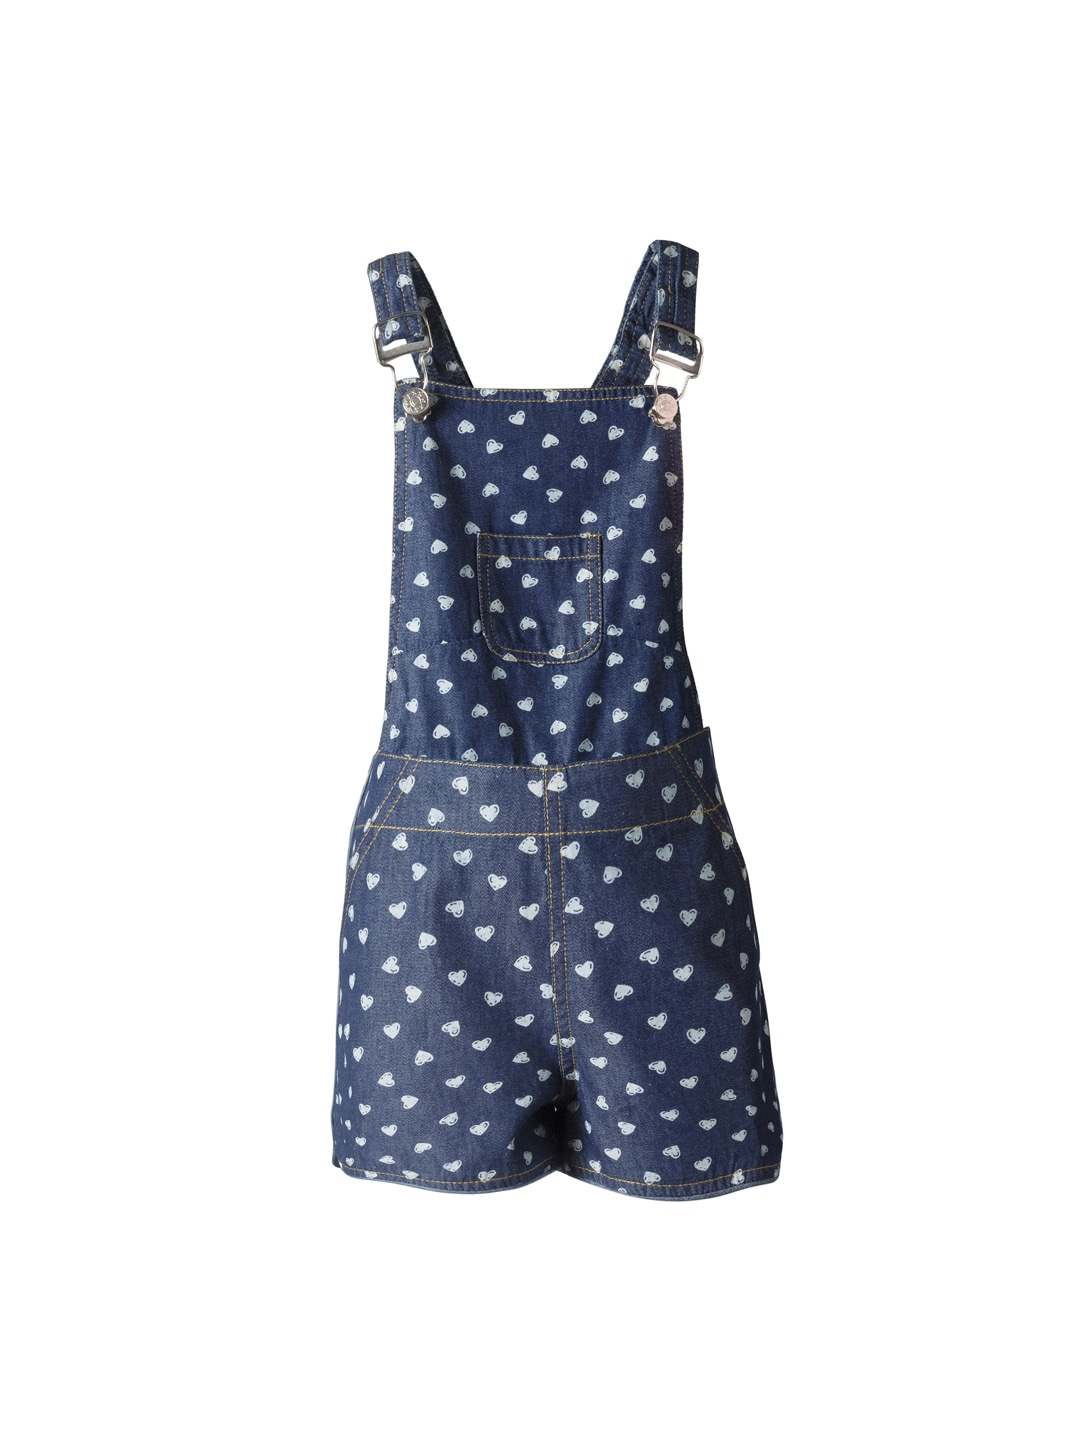 6e255d9ce6 Dungarees - Buy Dungarees Dress for Women Online - Myntra